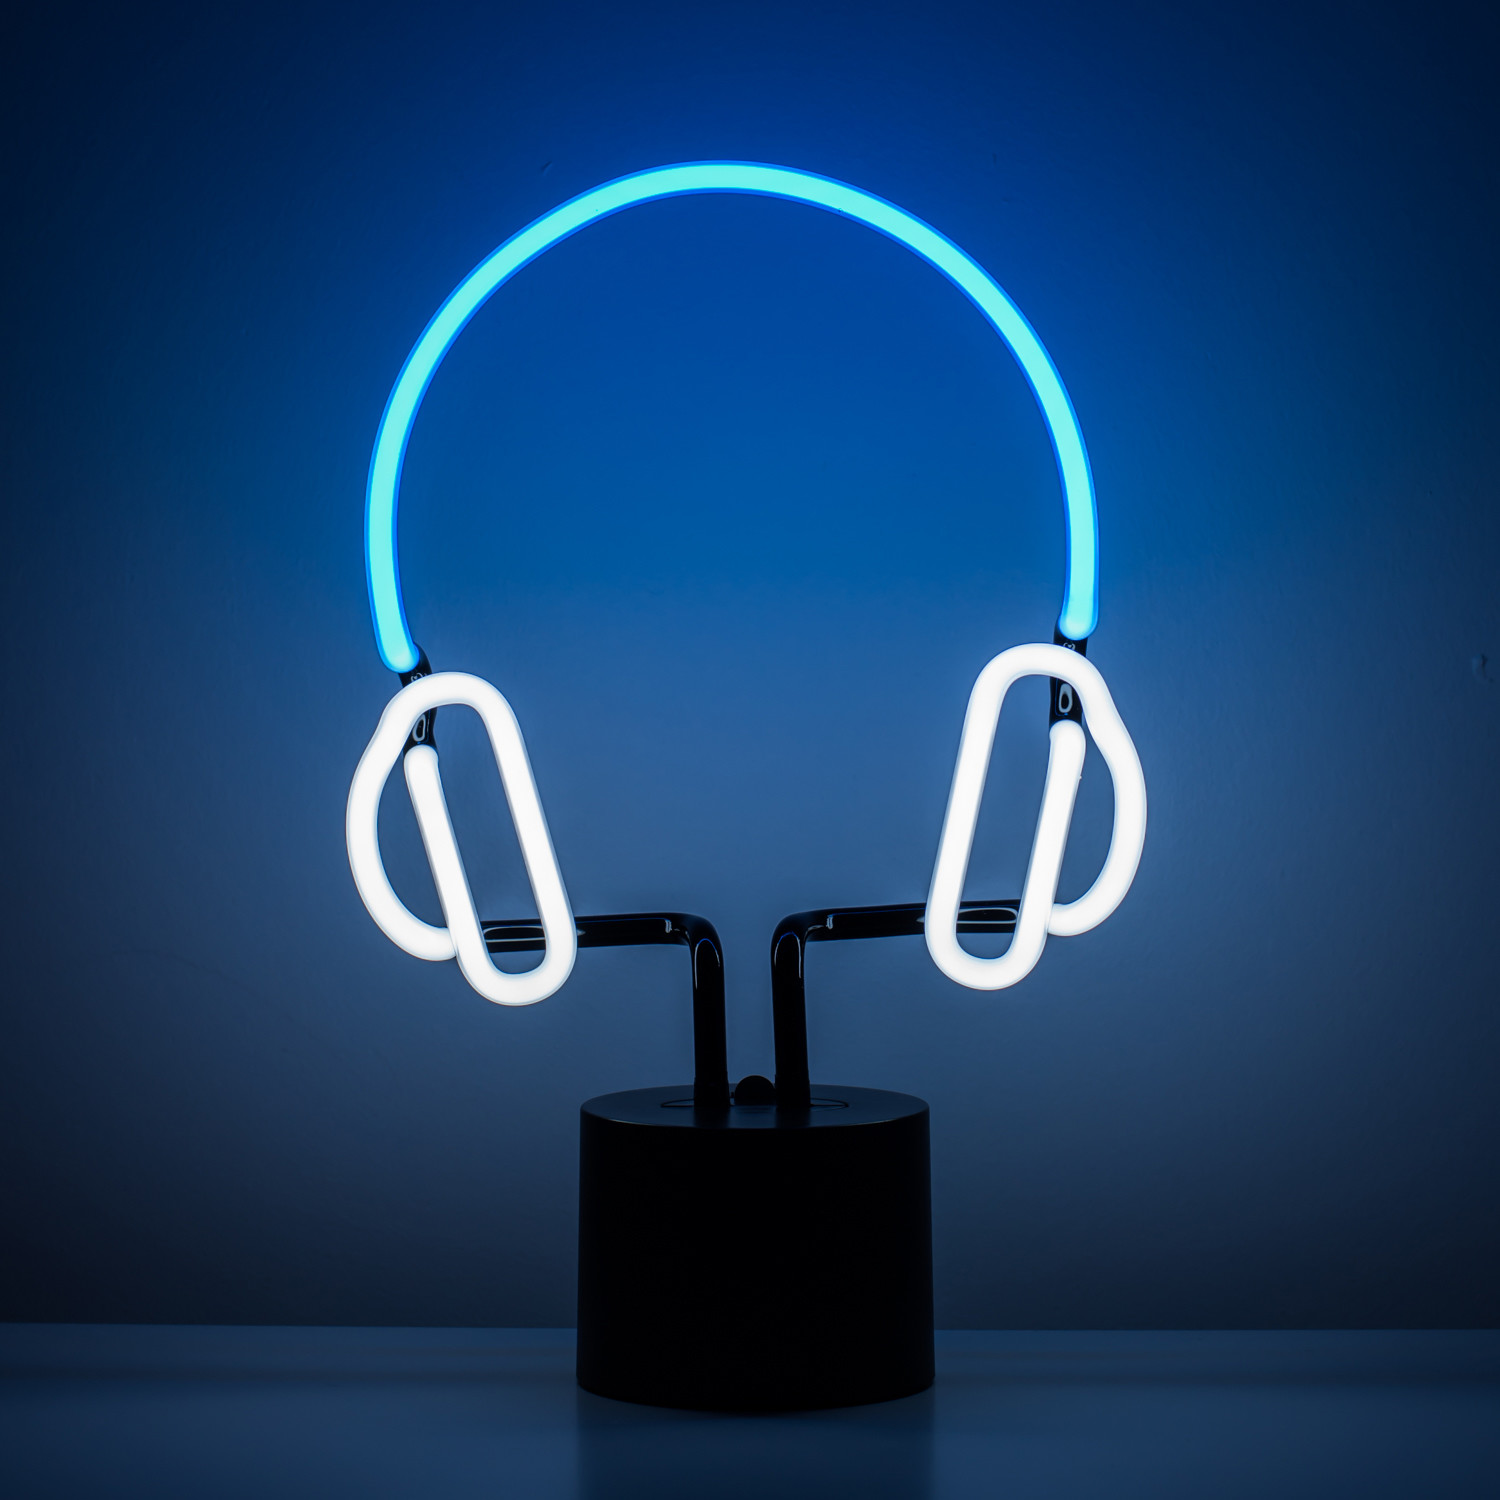 Neon Lamp Headphone Neon Light Amped Co Touch Of Modern